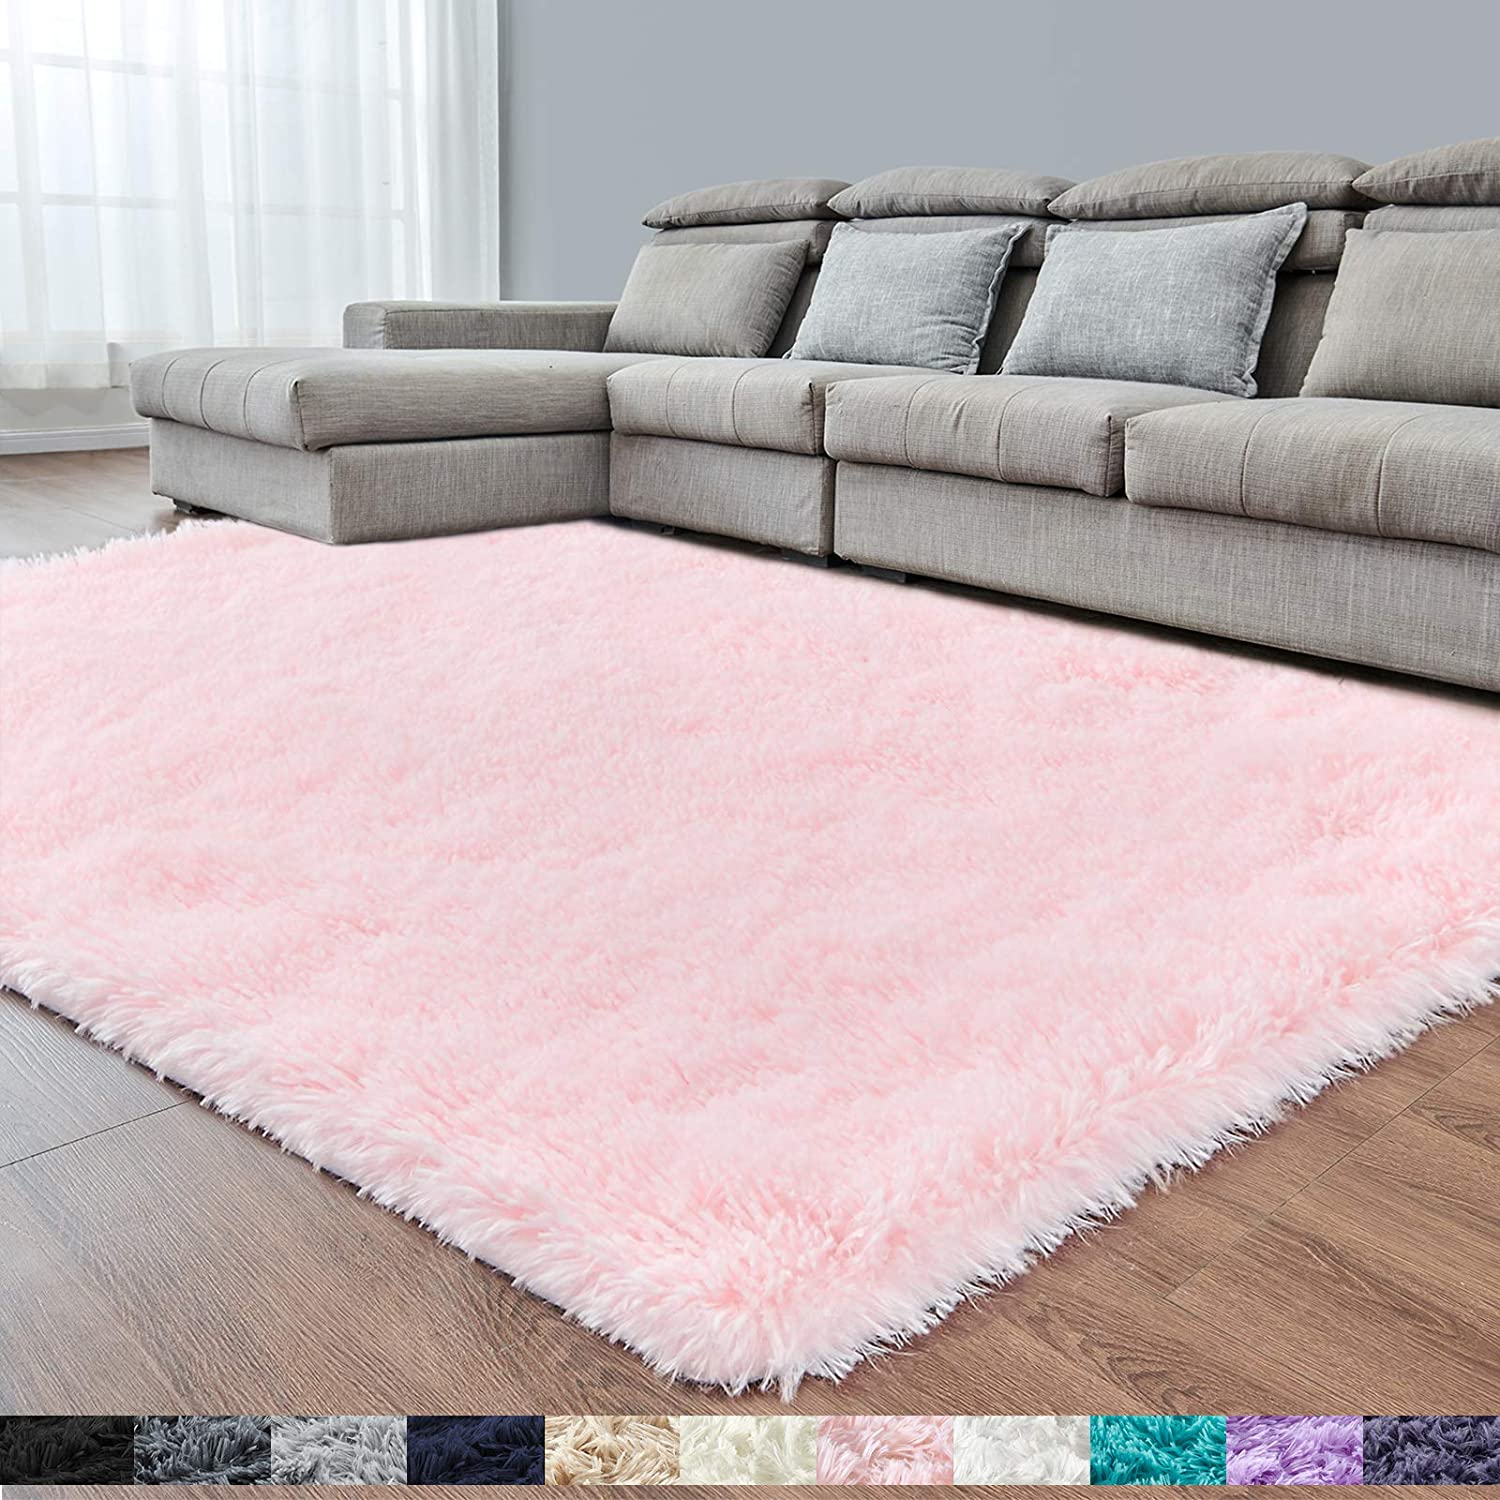 Pink Super Soft Area Rug for Bedroom,4x6,Fluffy Rugs,Shag Carpet for Living Room,Furry Rug for Girls Baby Room,Shaggy Rug for Kids Room,Nursery,Dorm,Non-Slip Rug,Pink Carpet,Home Decor,Bedside Rug